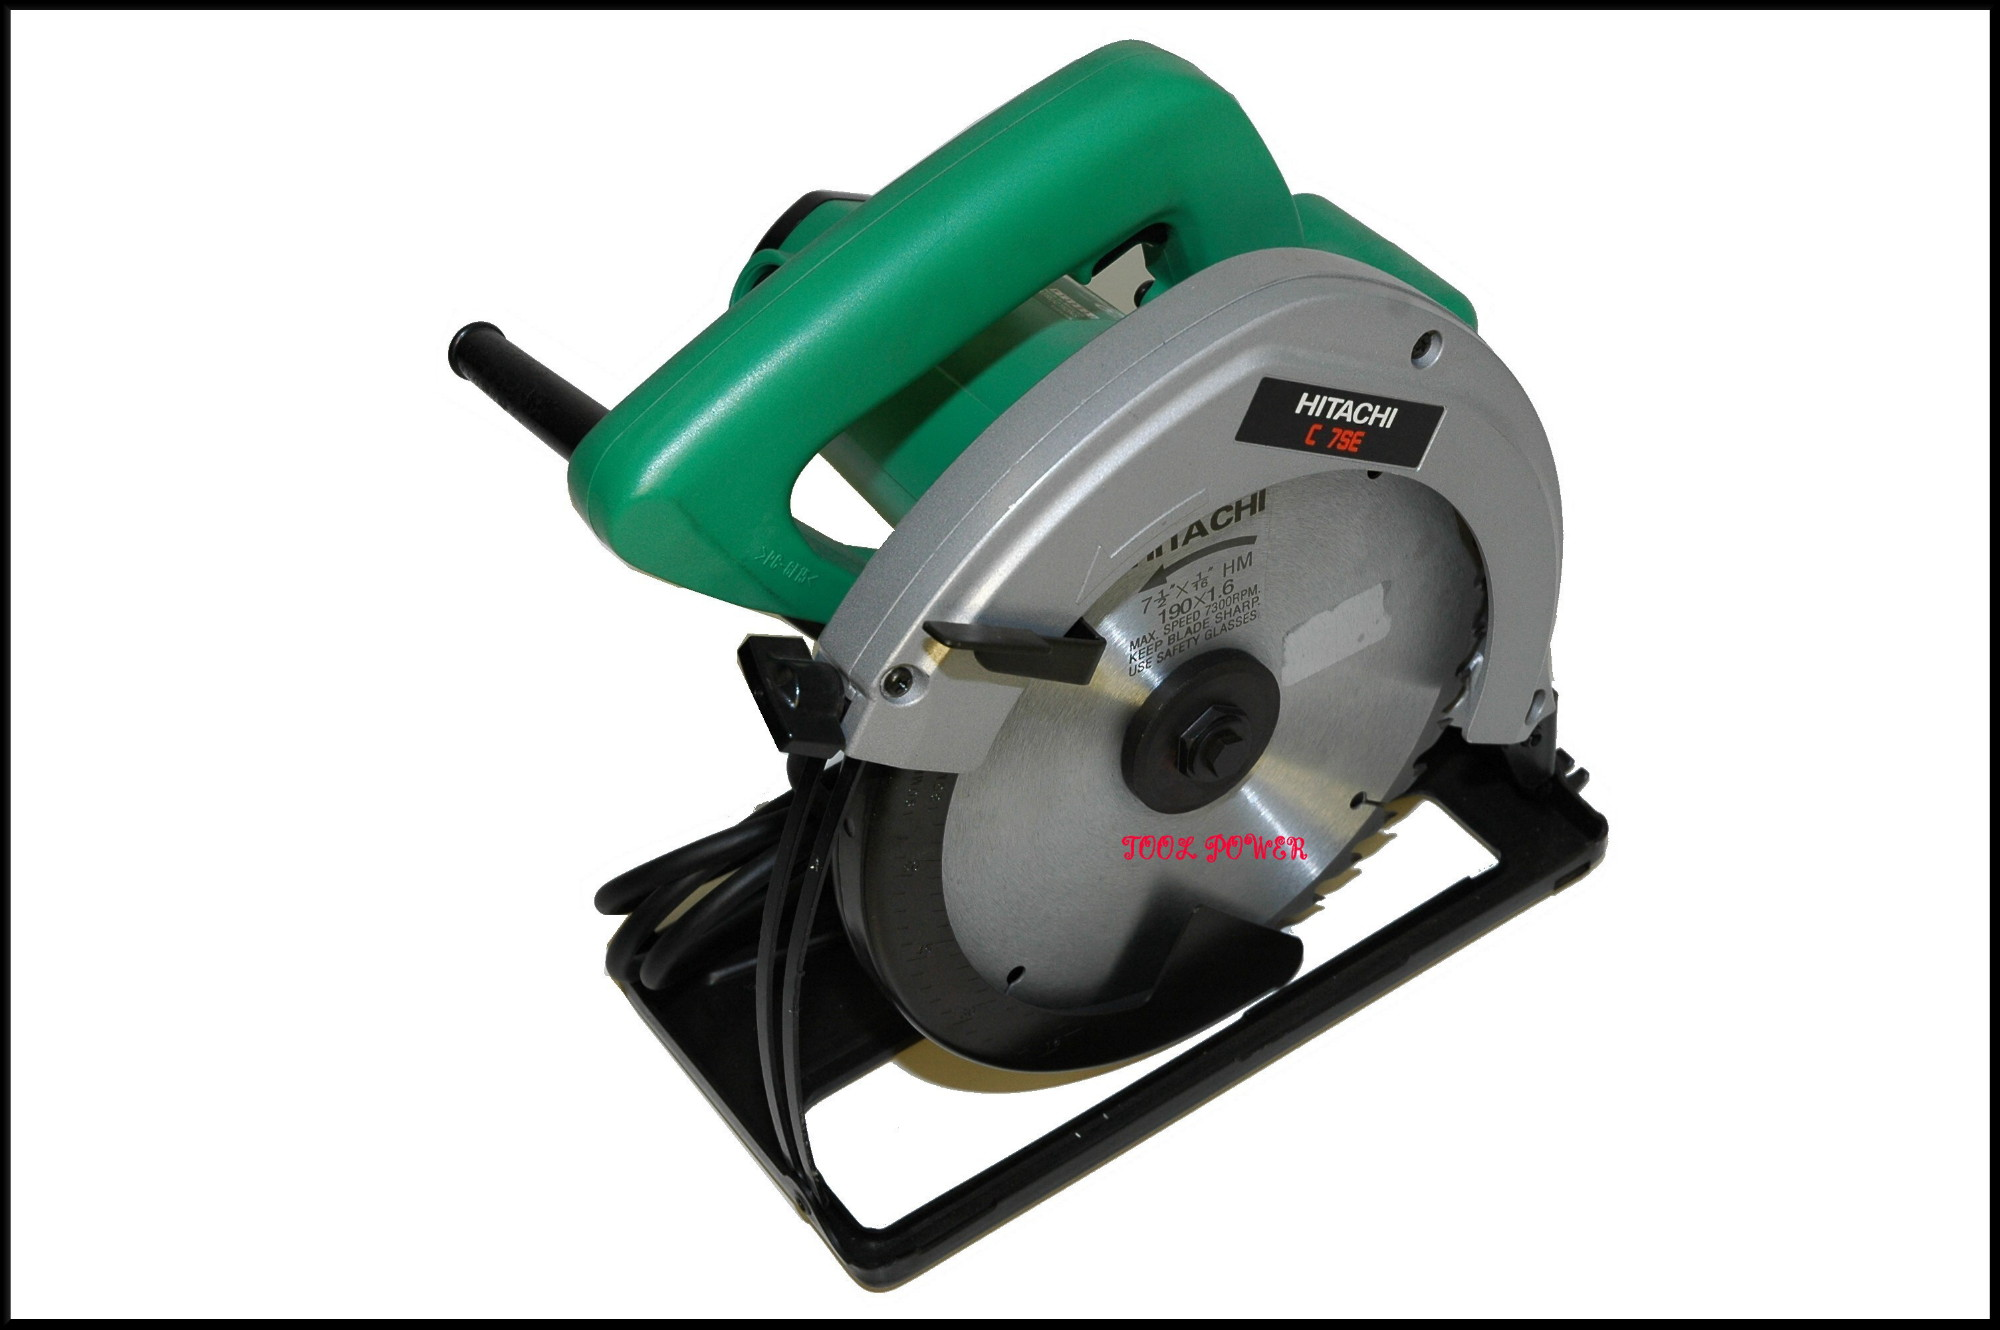 Hitachi circular saw for sale